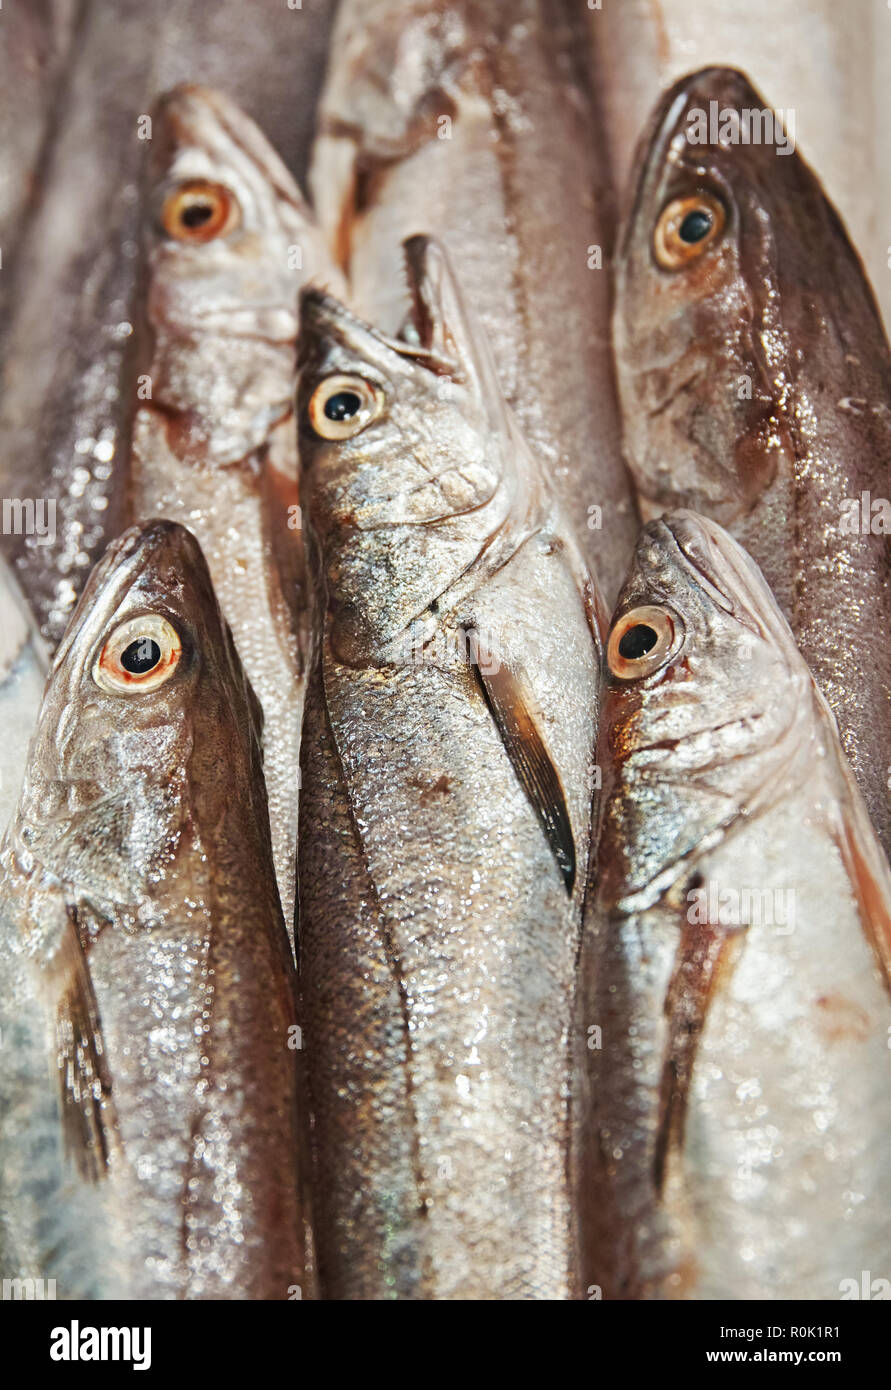 fish in the market - Stock Image